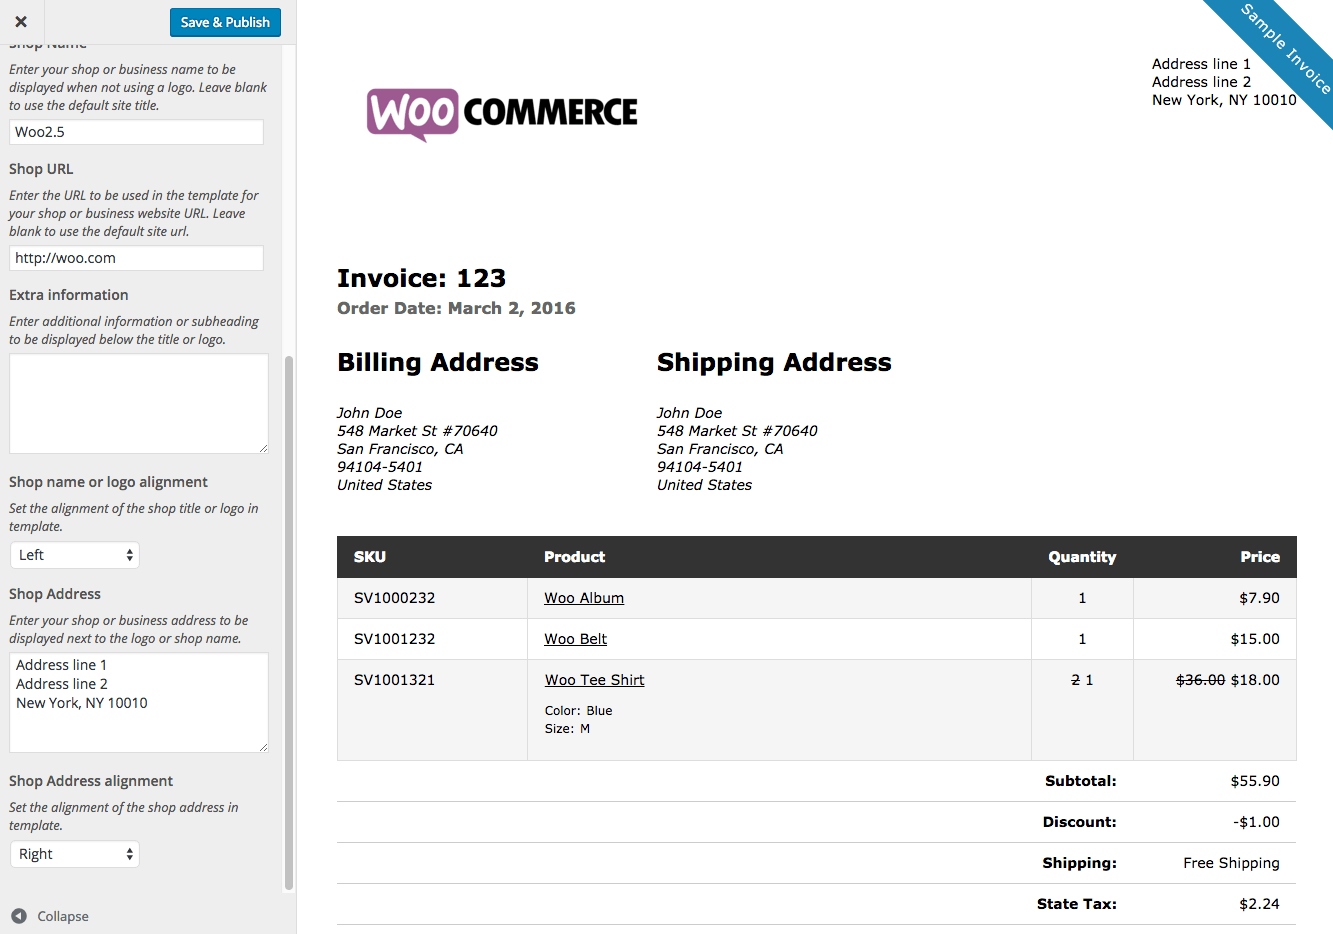 Usdgus  Personable Print Invoices Amp Packing Lists  Woocommerce With Lovable Woocommerce Print Invoices  Packing Lists Customizer With Attractive Receipt Design Also Snbc Receipt Printer In Addition Air Force Hand Receipt Form And Cake Receipt As Well As Receipt For Money Additionally How To Get Receipts From Woocommercecom With Usdgus  Lovable Print Invoices Amp Packing Lists  Woocommerce With Attractive Woocommerce Print Invoices  Packing Lists Customizer And Personable Receipt Design Also Snbc Receipt Printer In Addition Air Force Hand Receipt Form From Woocommercecom